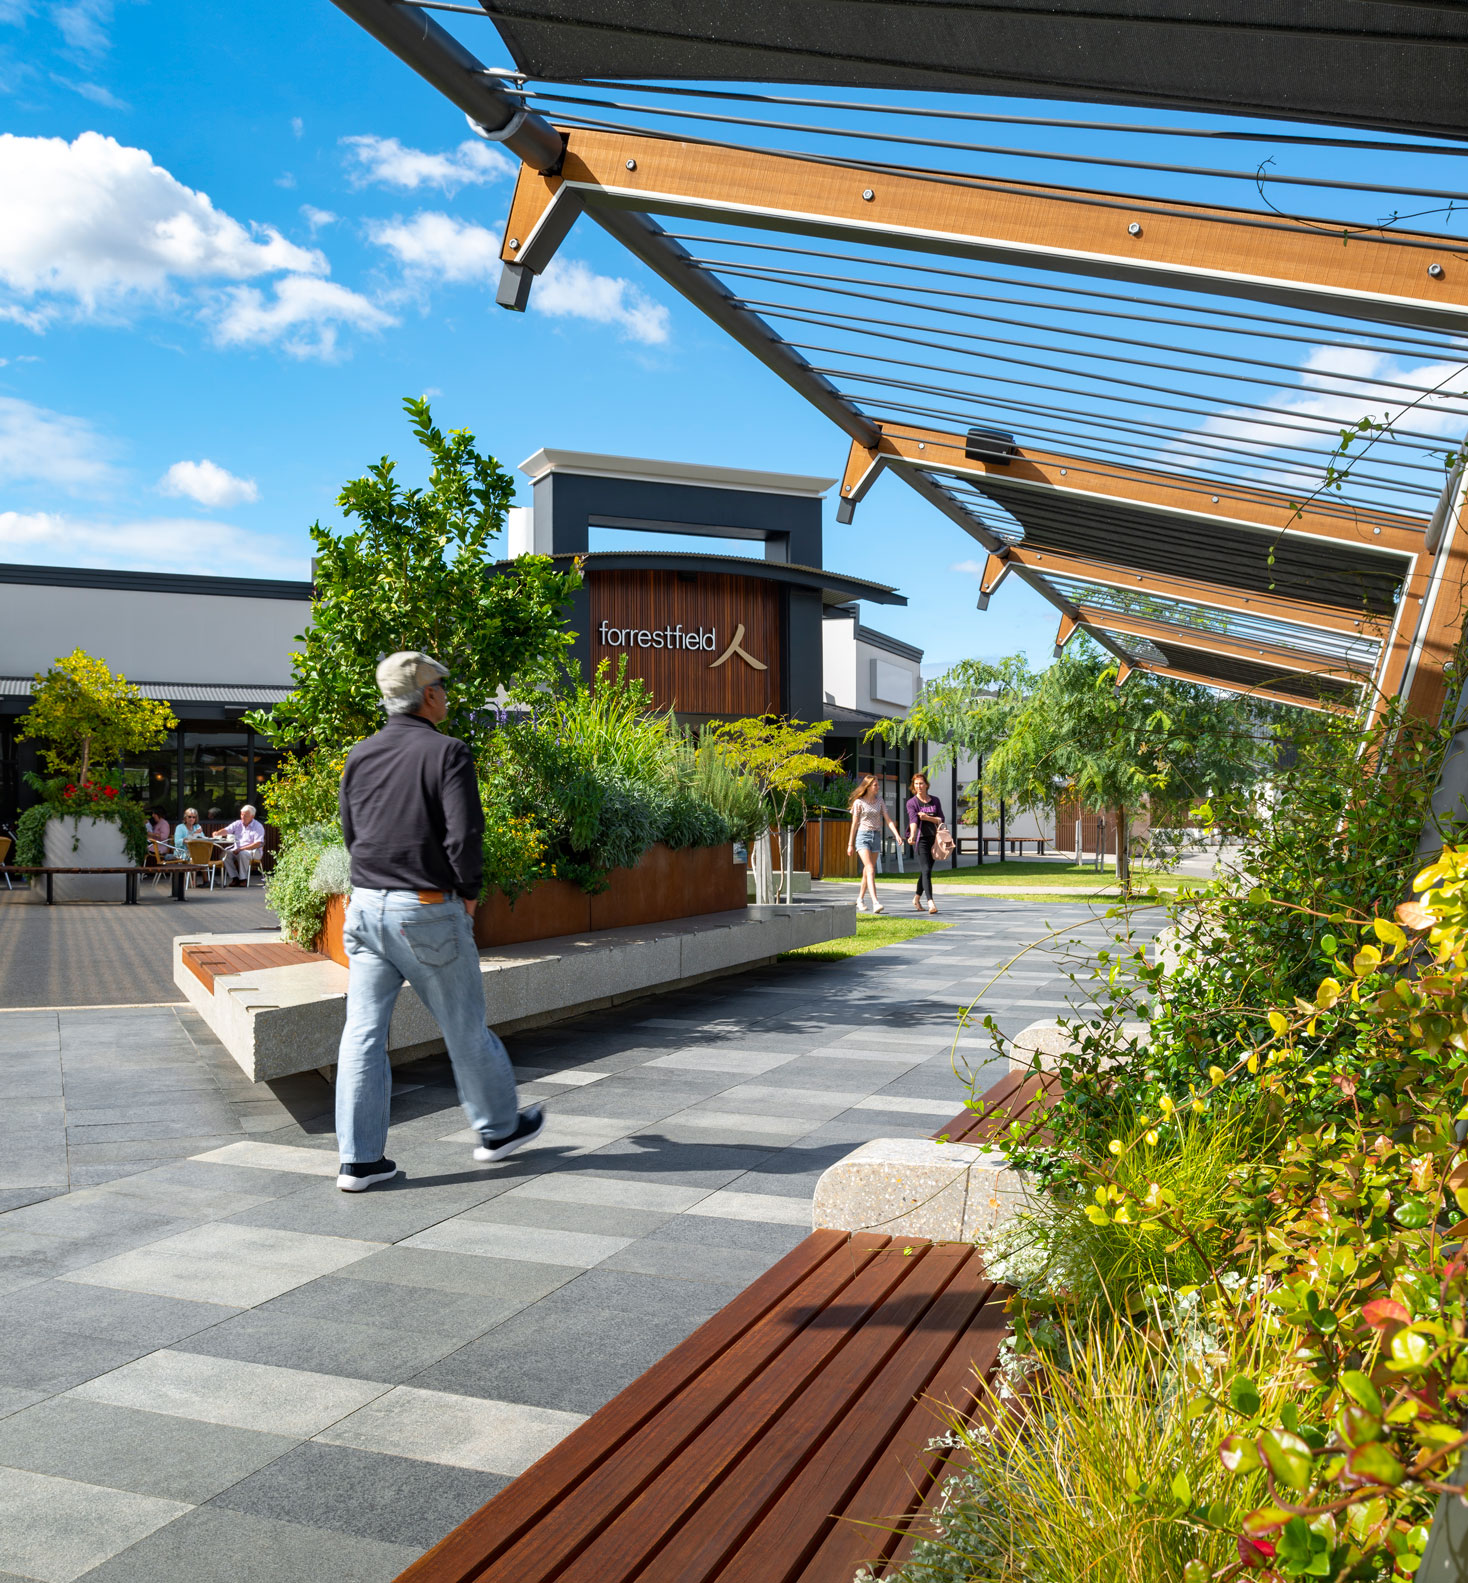 footpath to the entrance of Forrestfield Forum Shopping Centre surrounded by planter boxes and timber seating